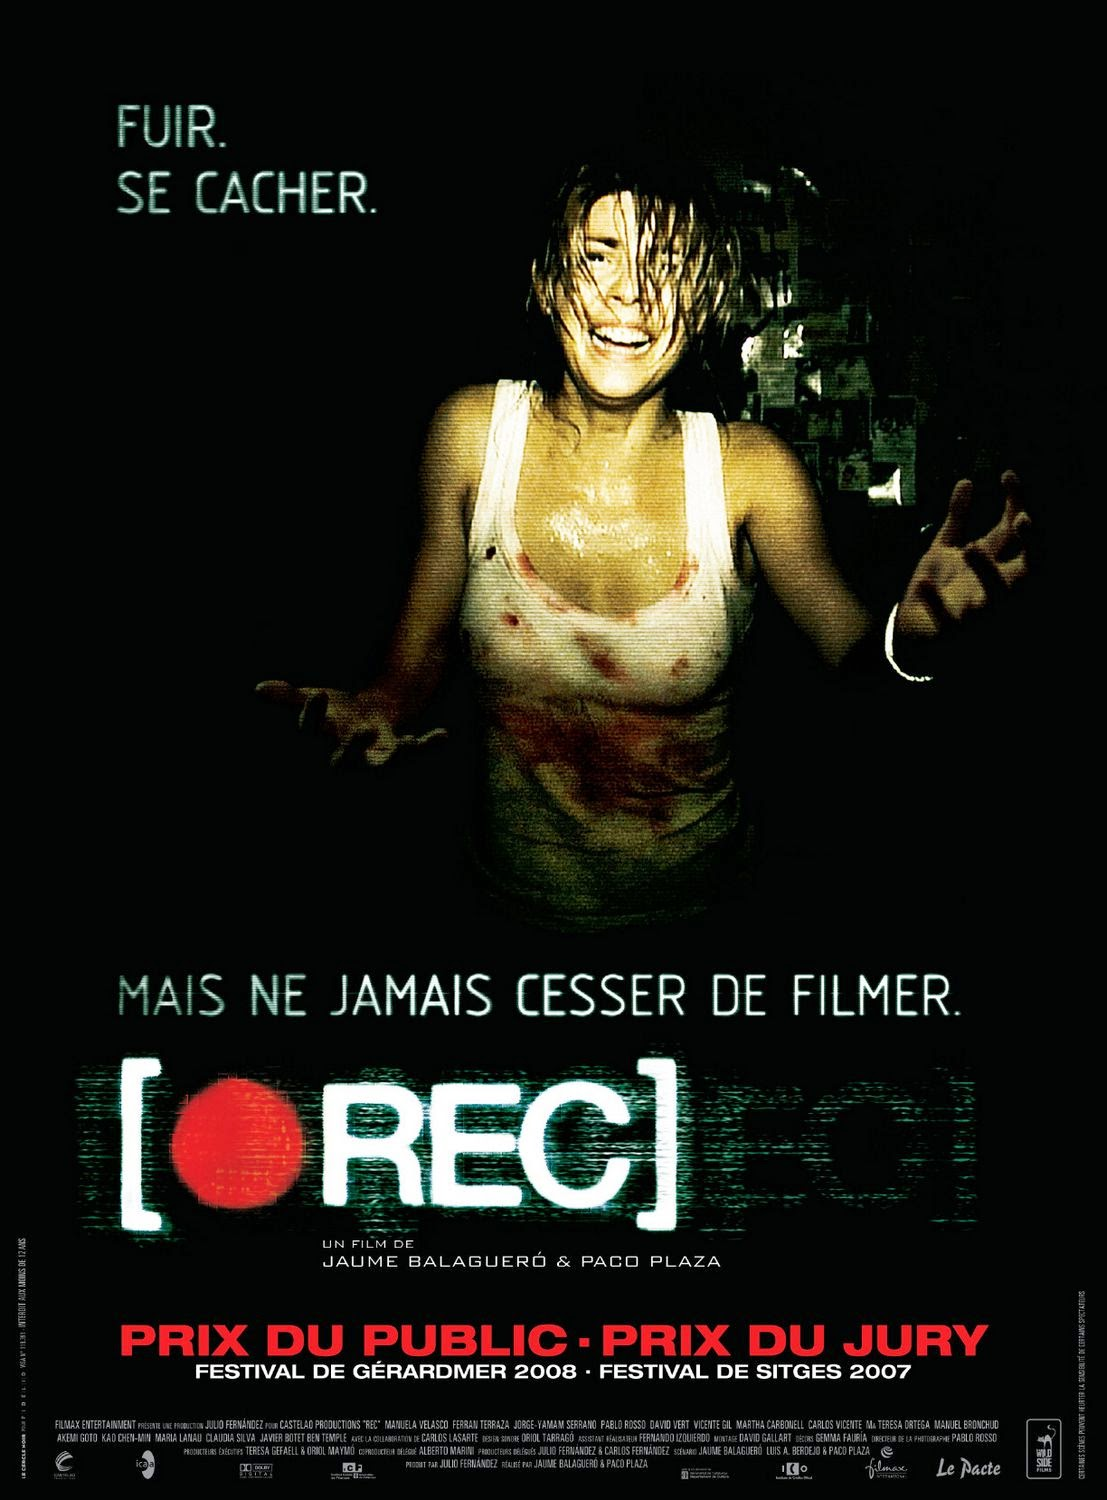 [Rec] (2007) - Spanish Movie